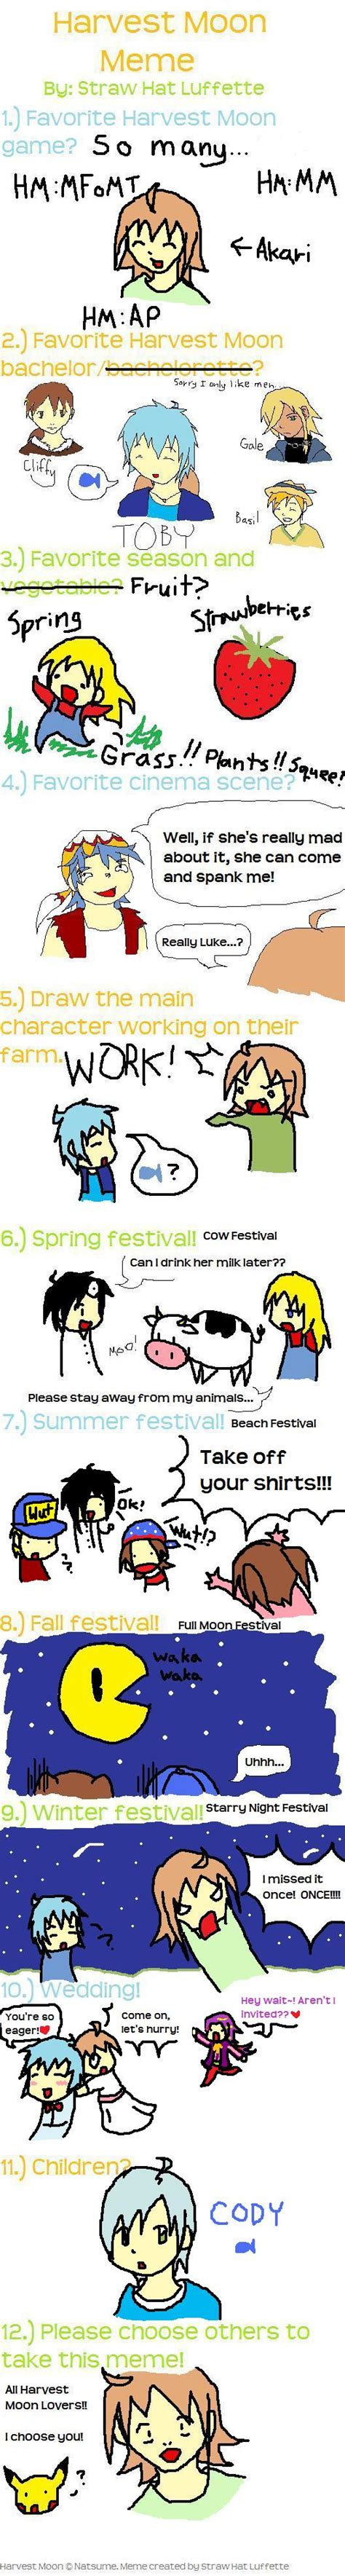 Harvest Moon Meme - harvest moon meme by me by roiaru on deviantart